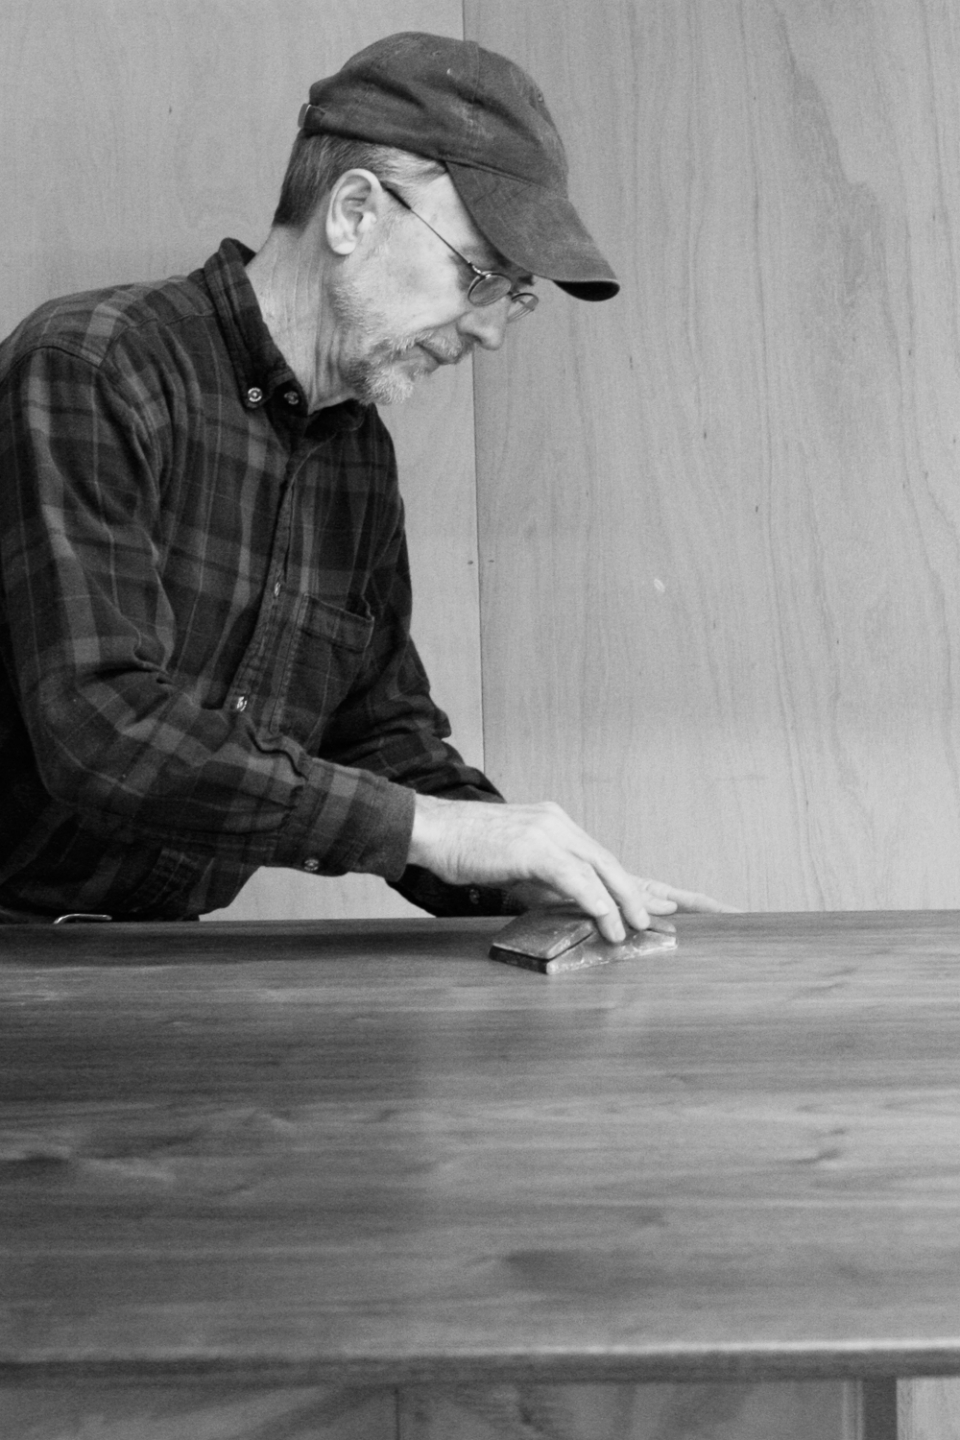 Gary sanding between coats of finish